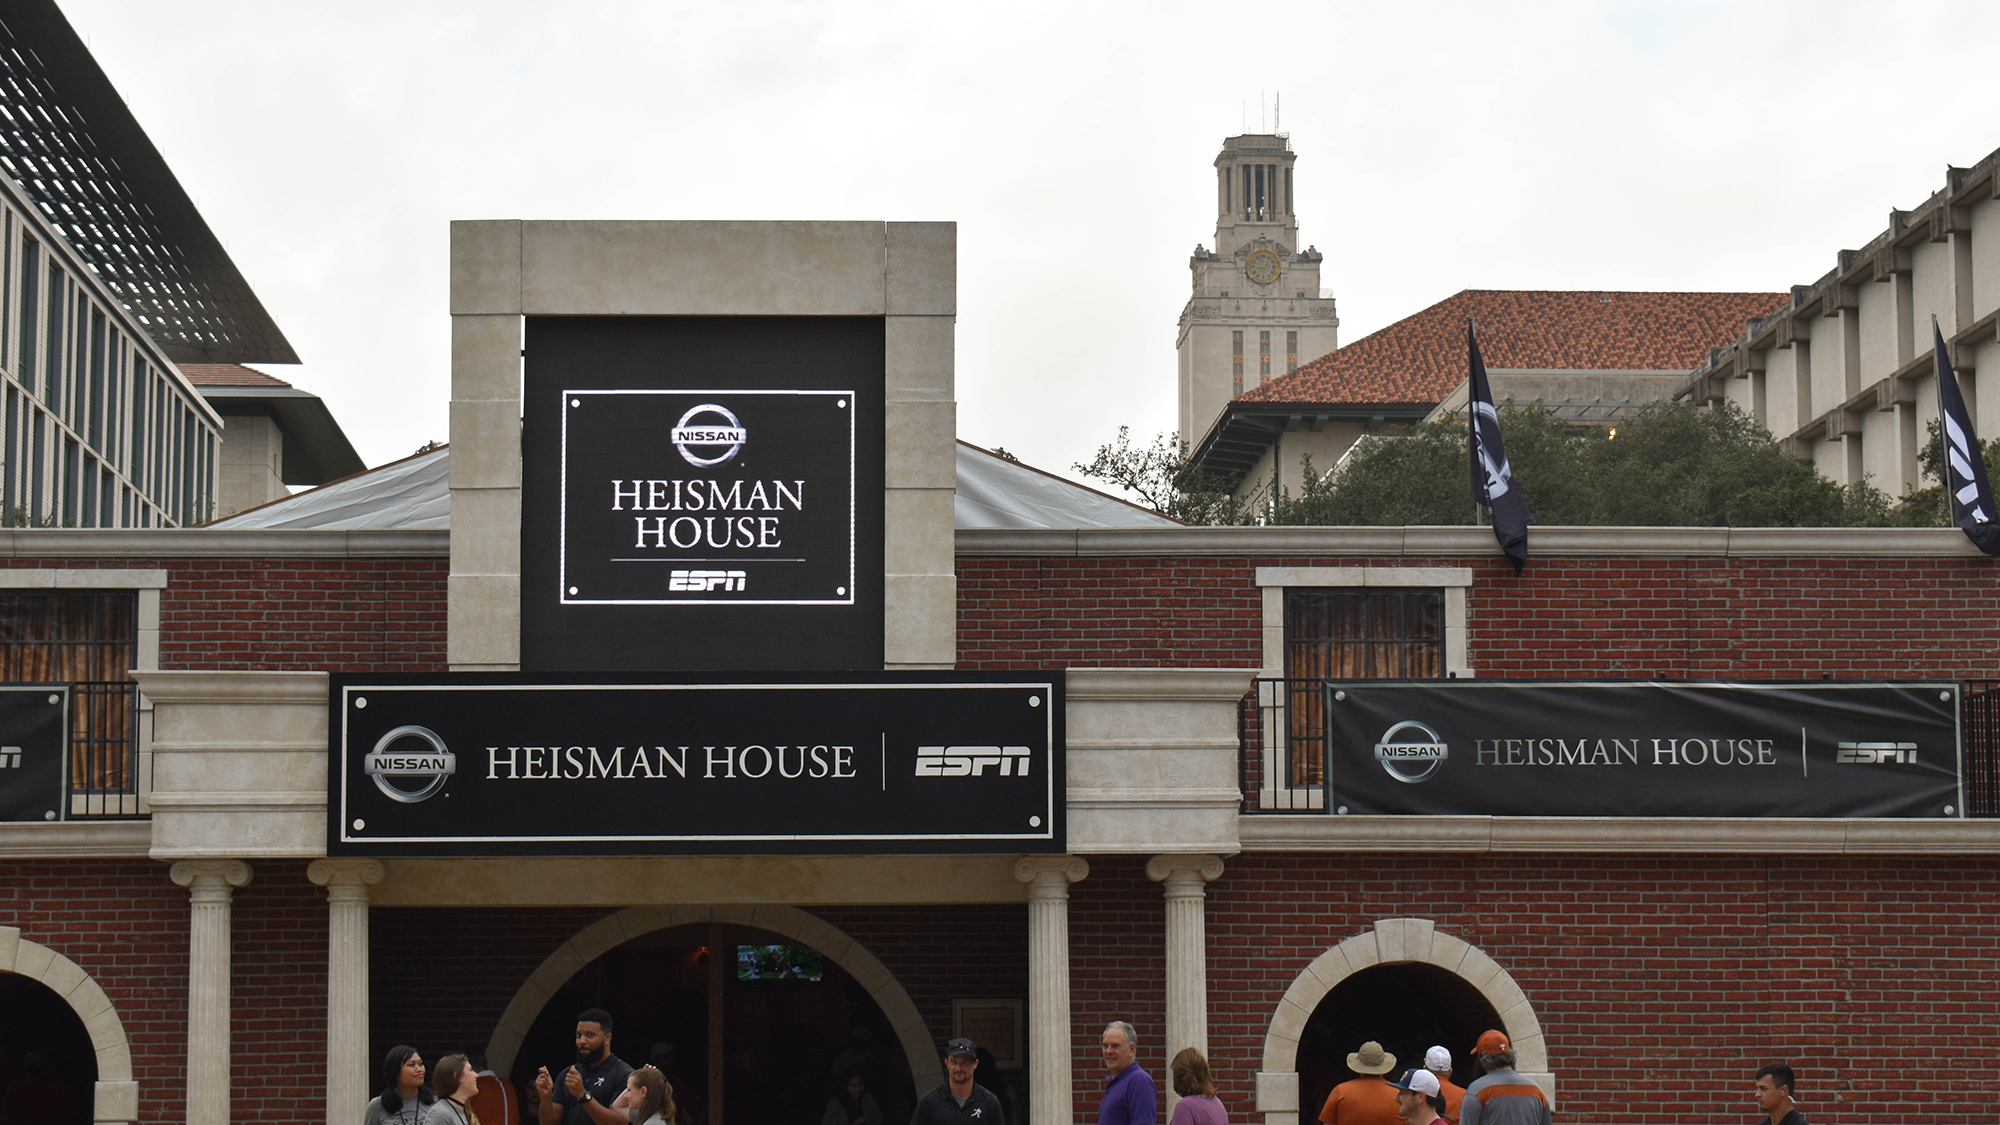 Inside the Heisman House with Ricky Williams University of Texas